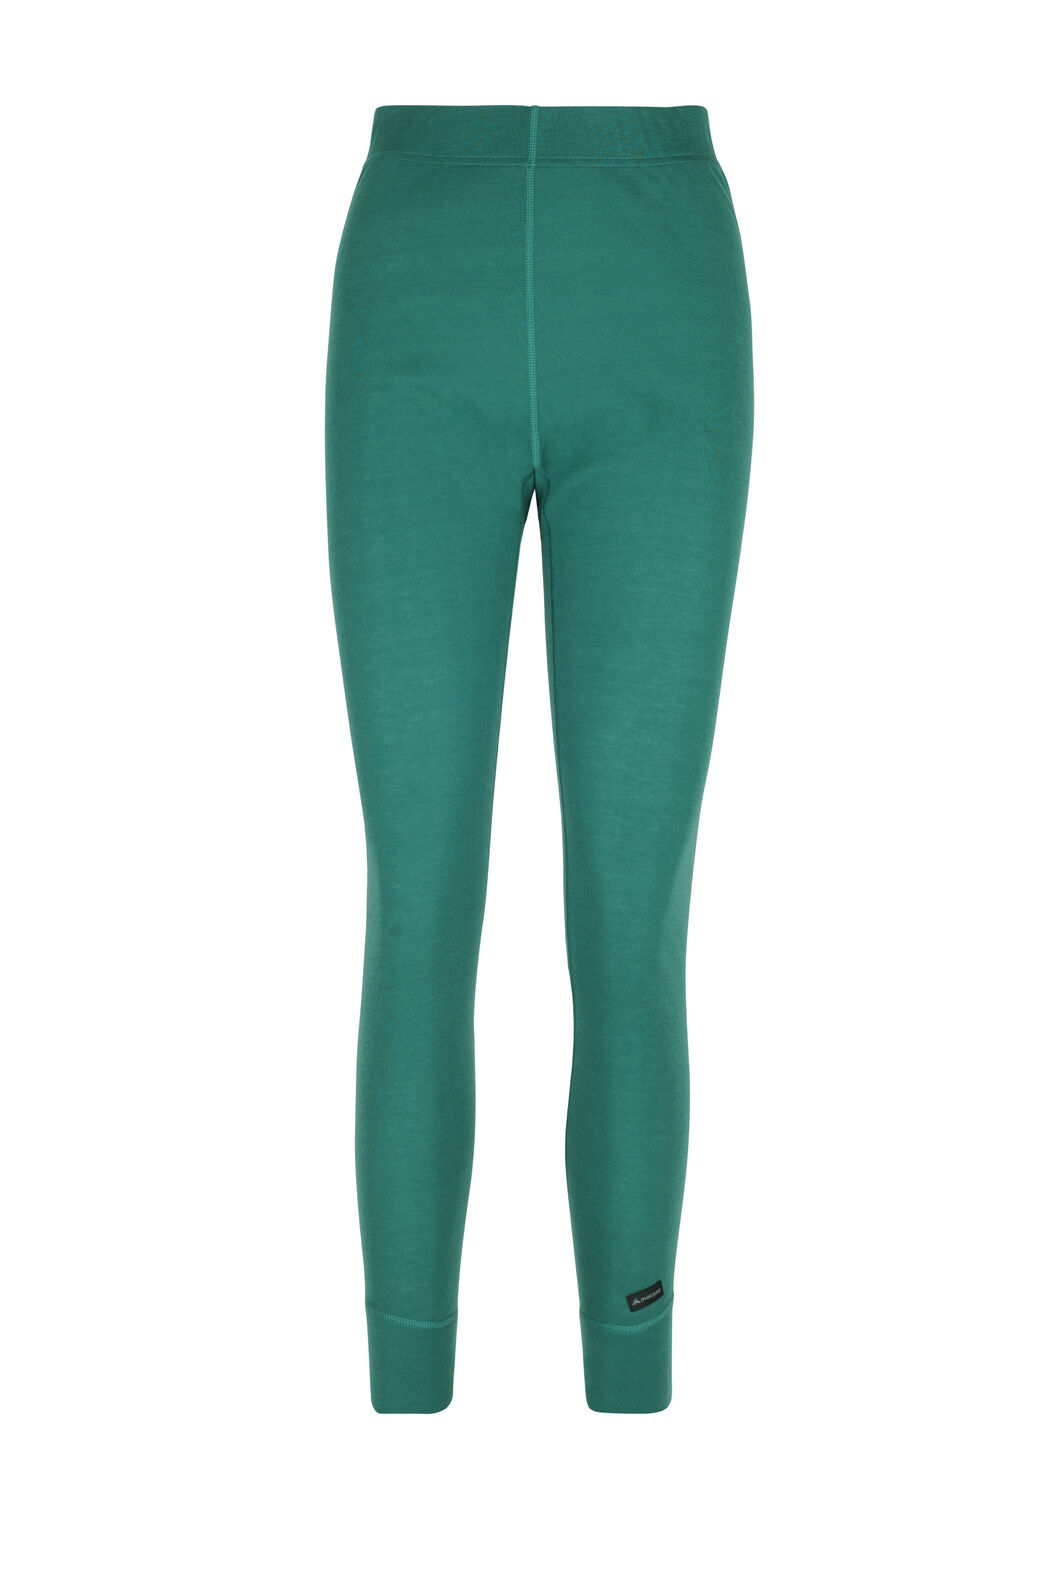 Macpac Geothermal Long Johns — Women's, Storm, hi-res